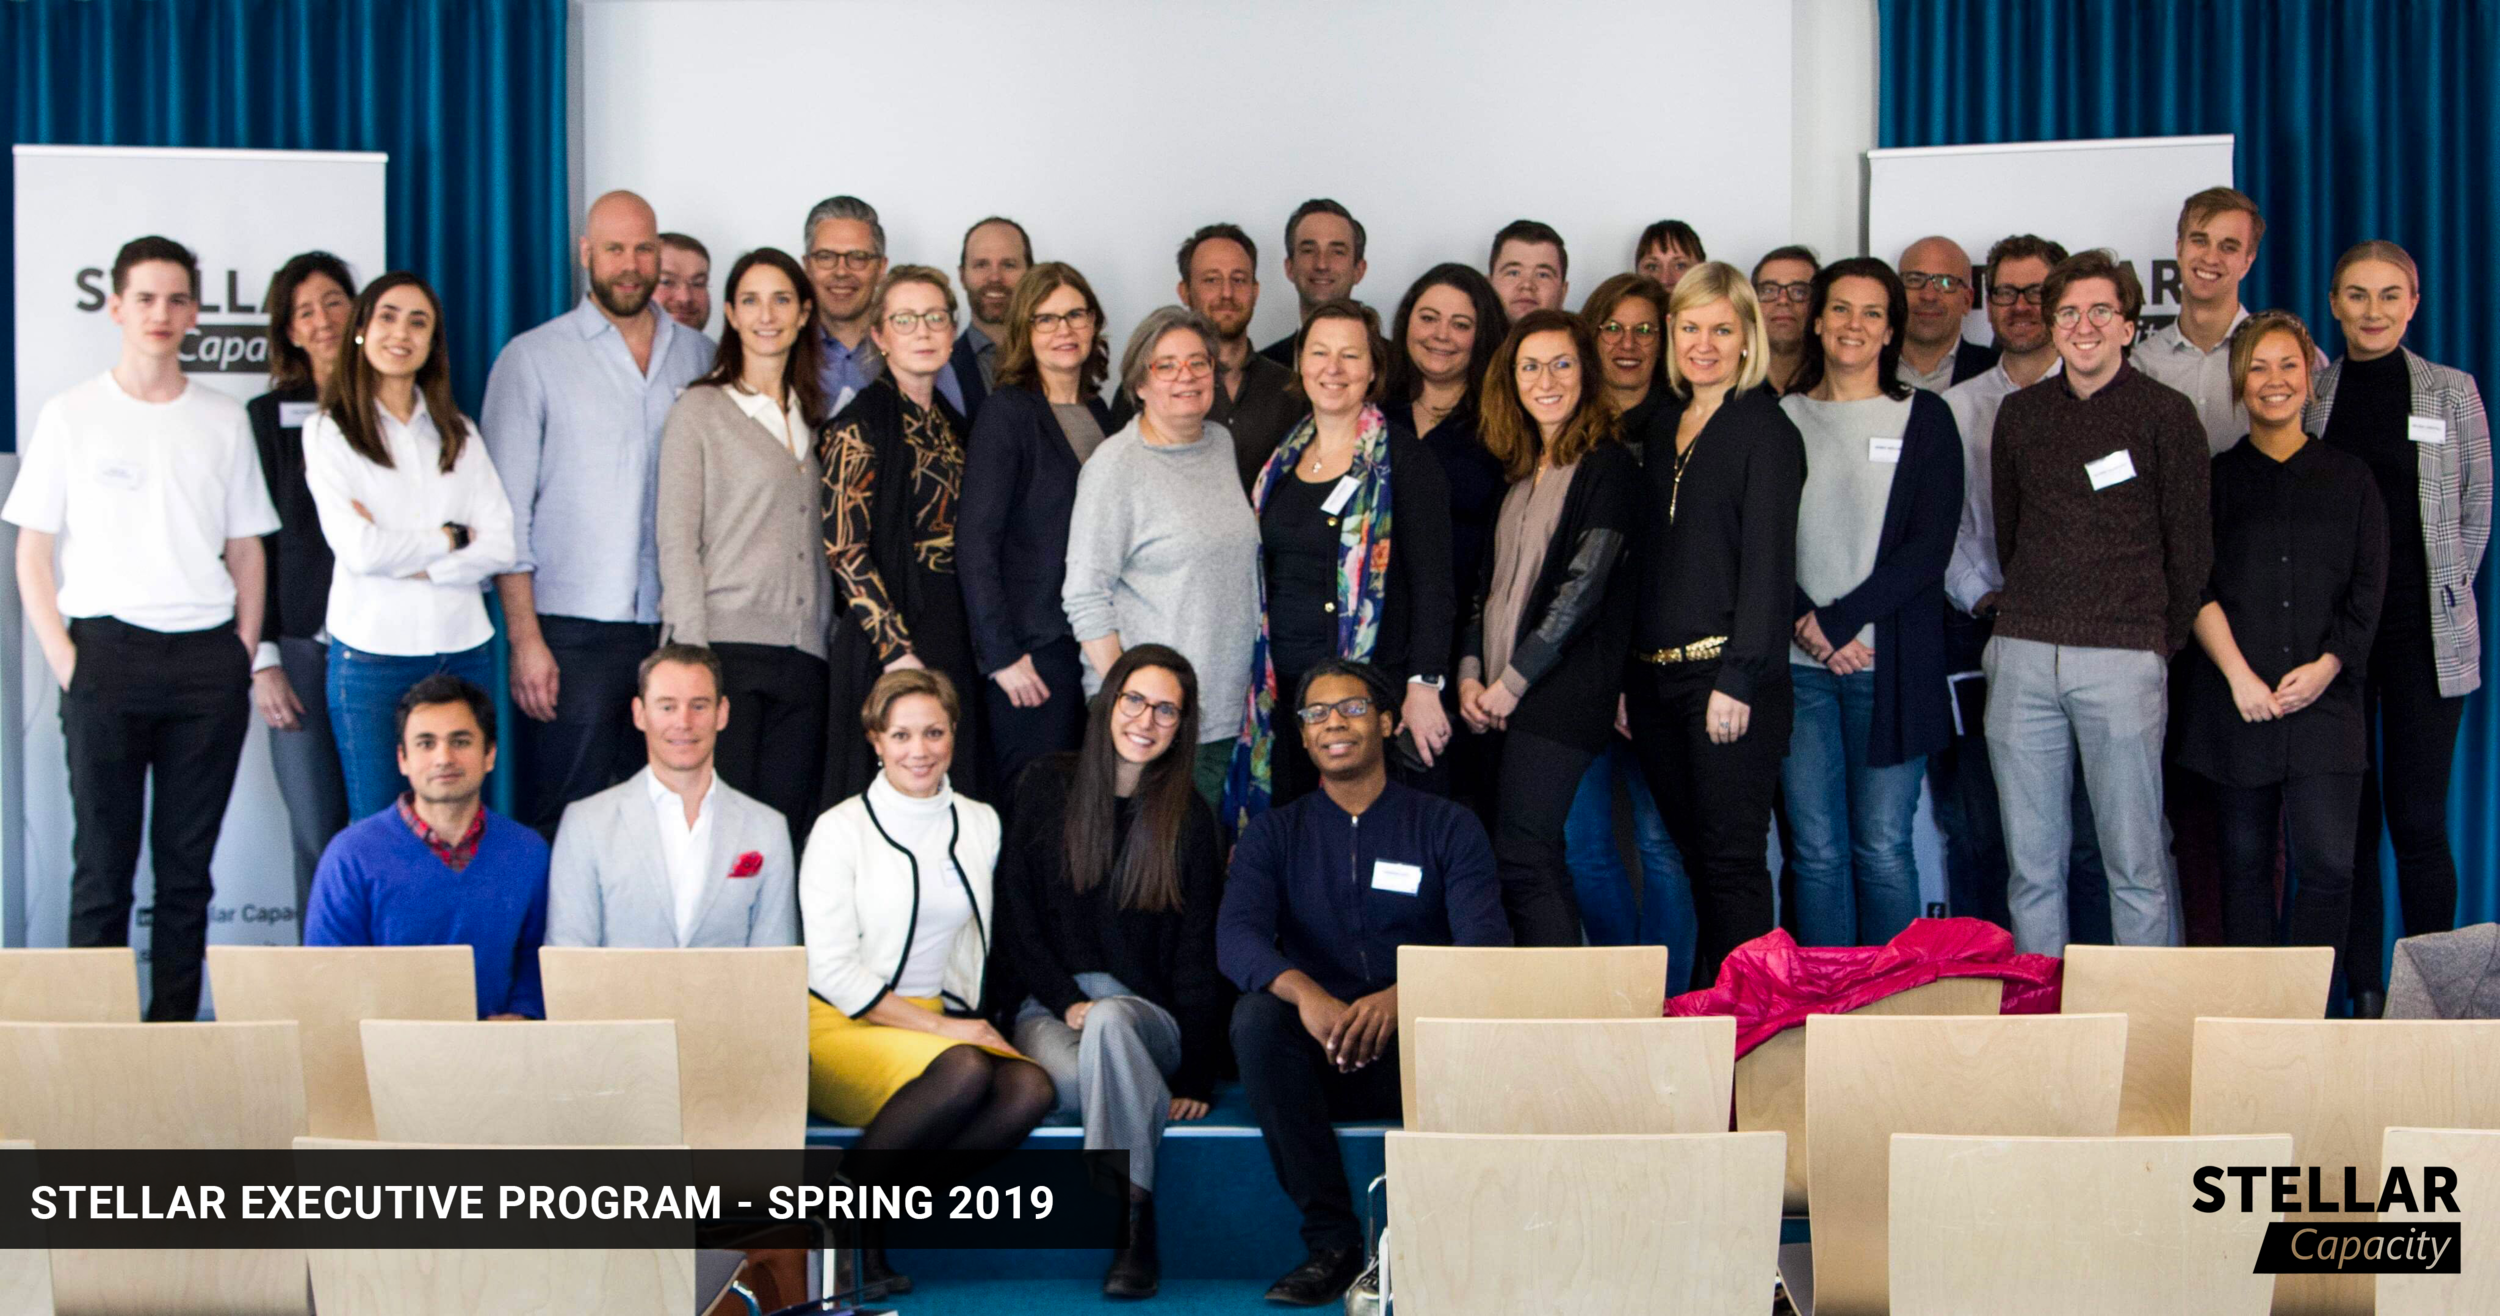 Stellar Executive Program - Spring 2019 - Stellar Capacity